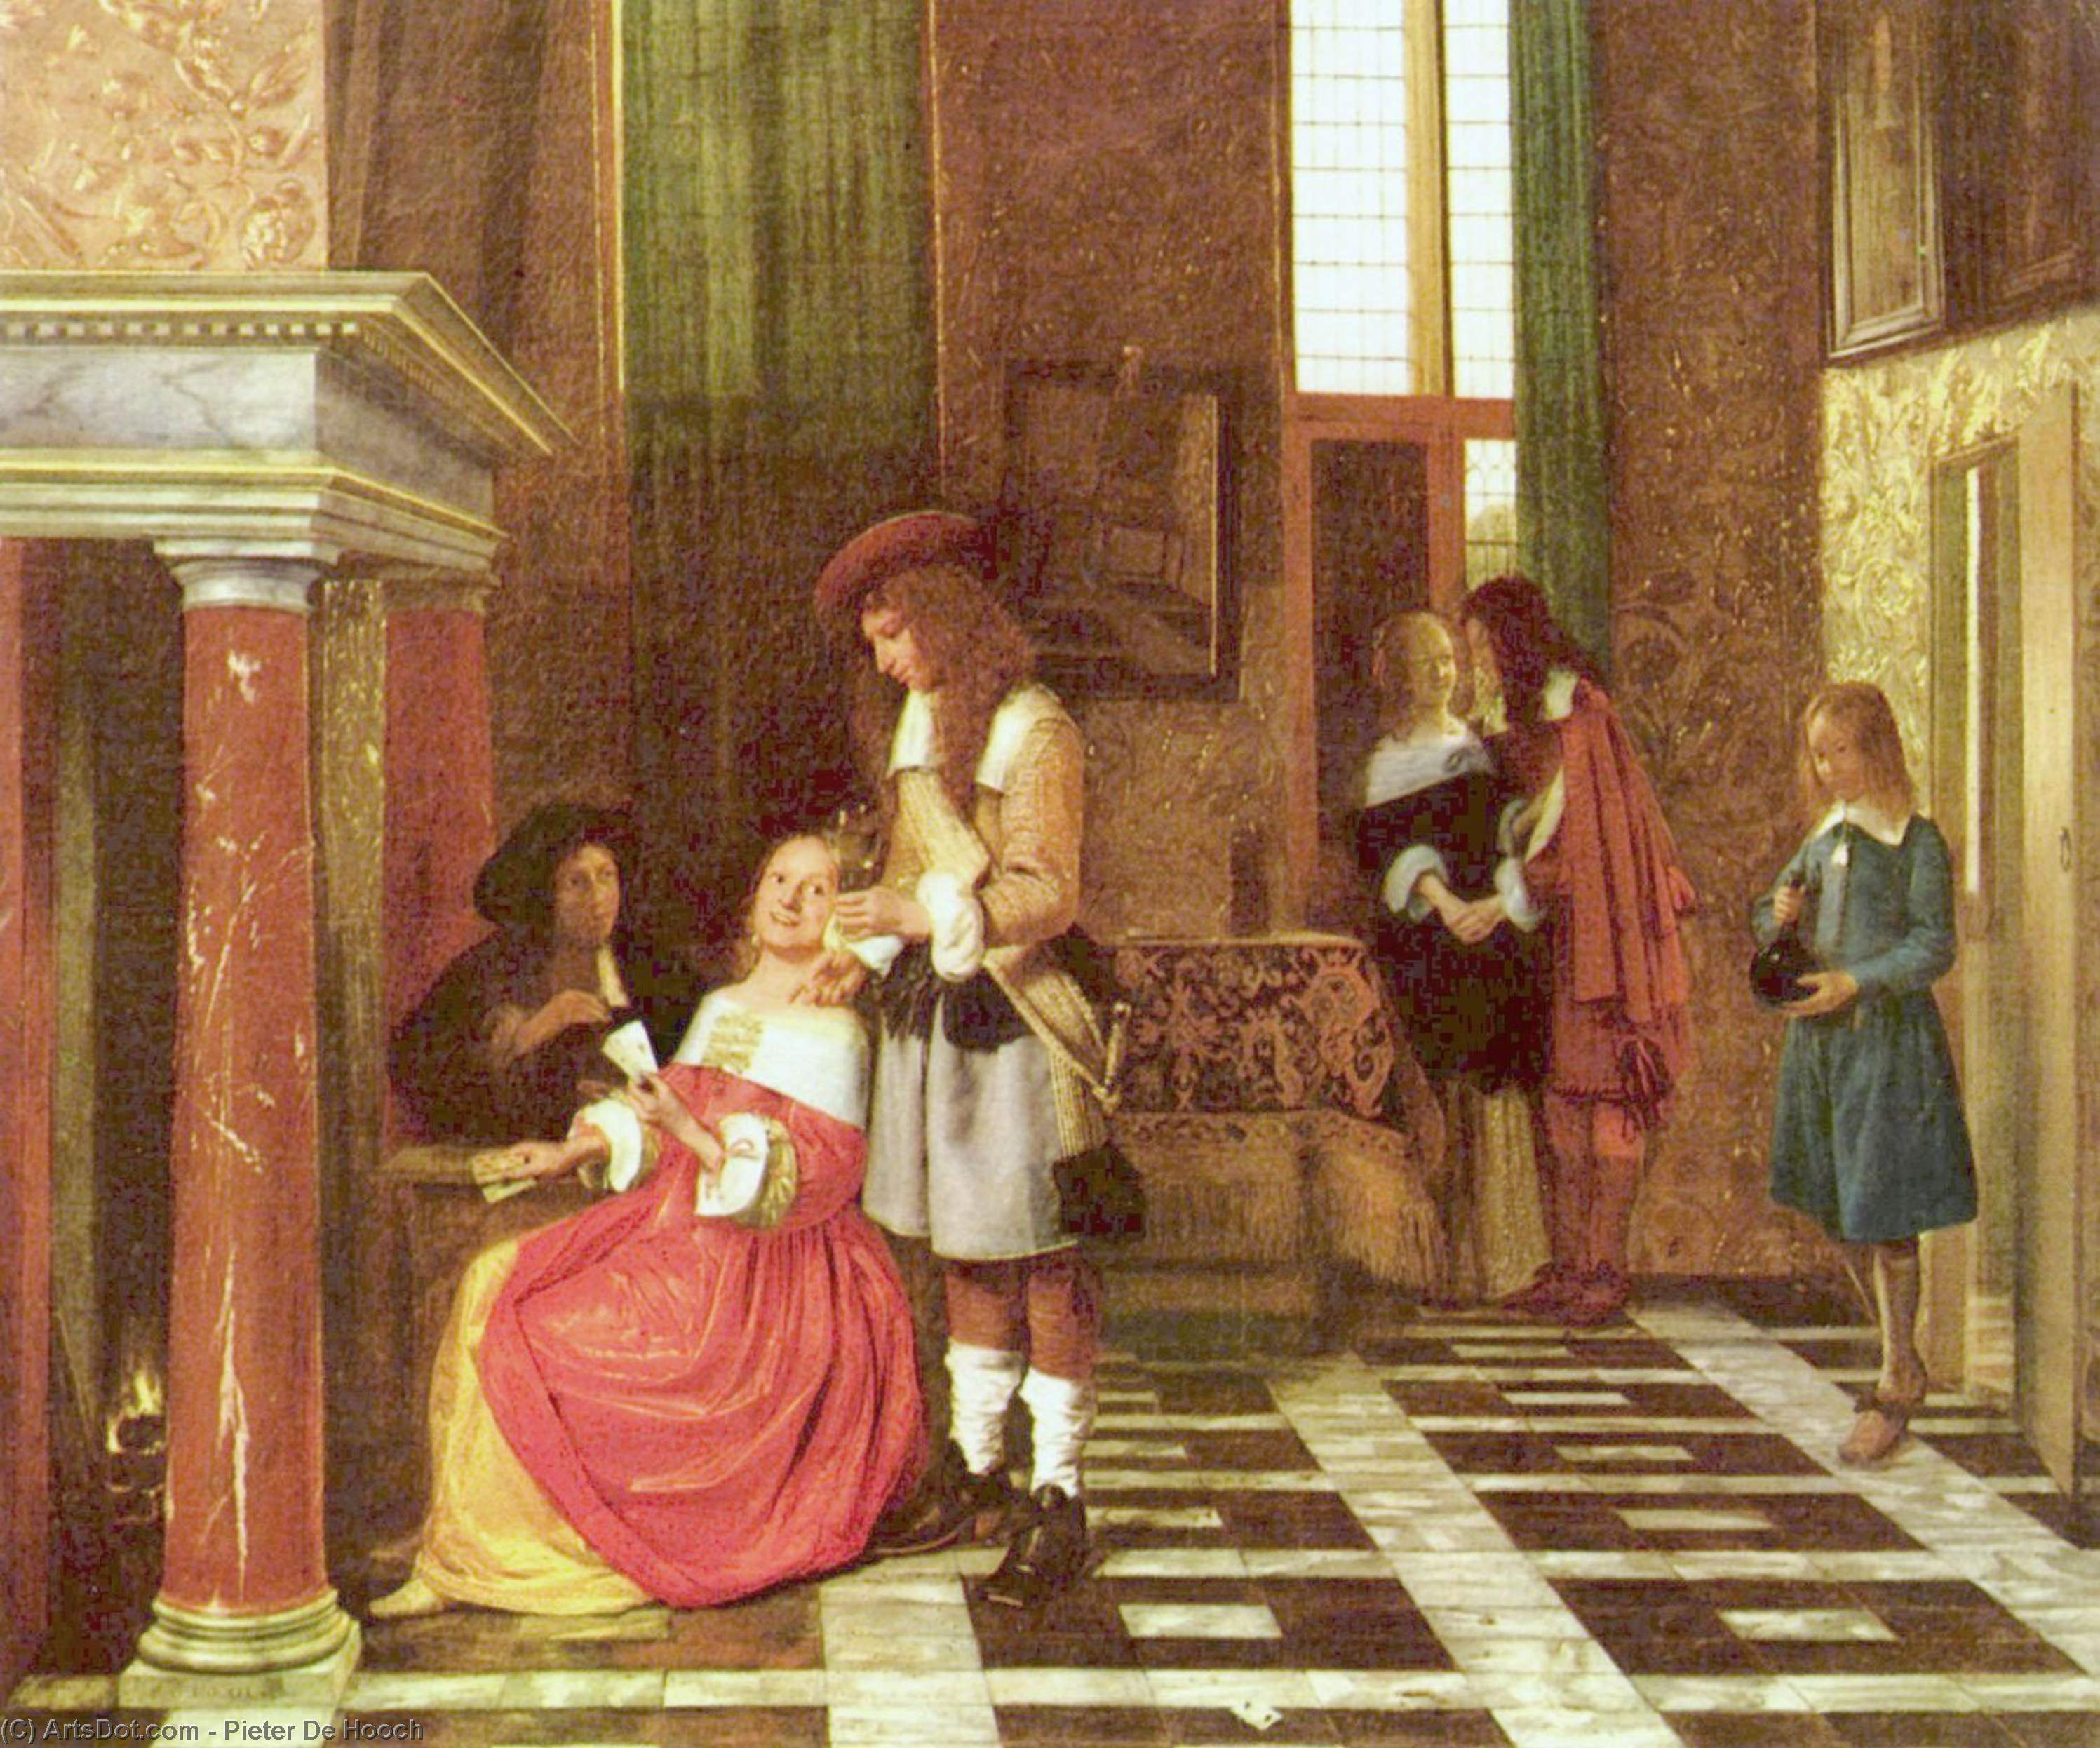 Wikioo.org - The Encyclopedia of Fine Arts - Painting, Artwork by Pieter De Hooch - The Card Players